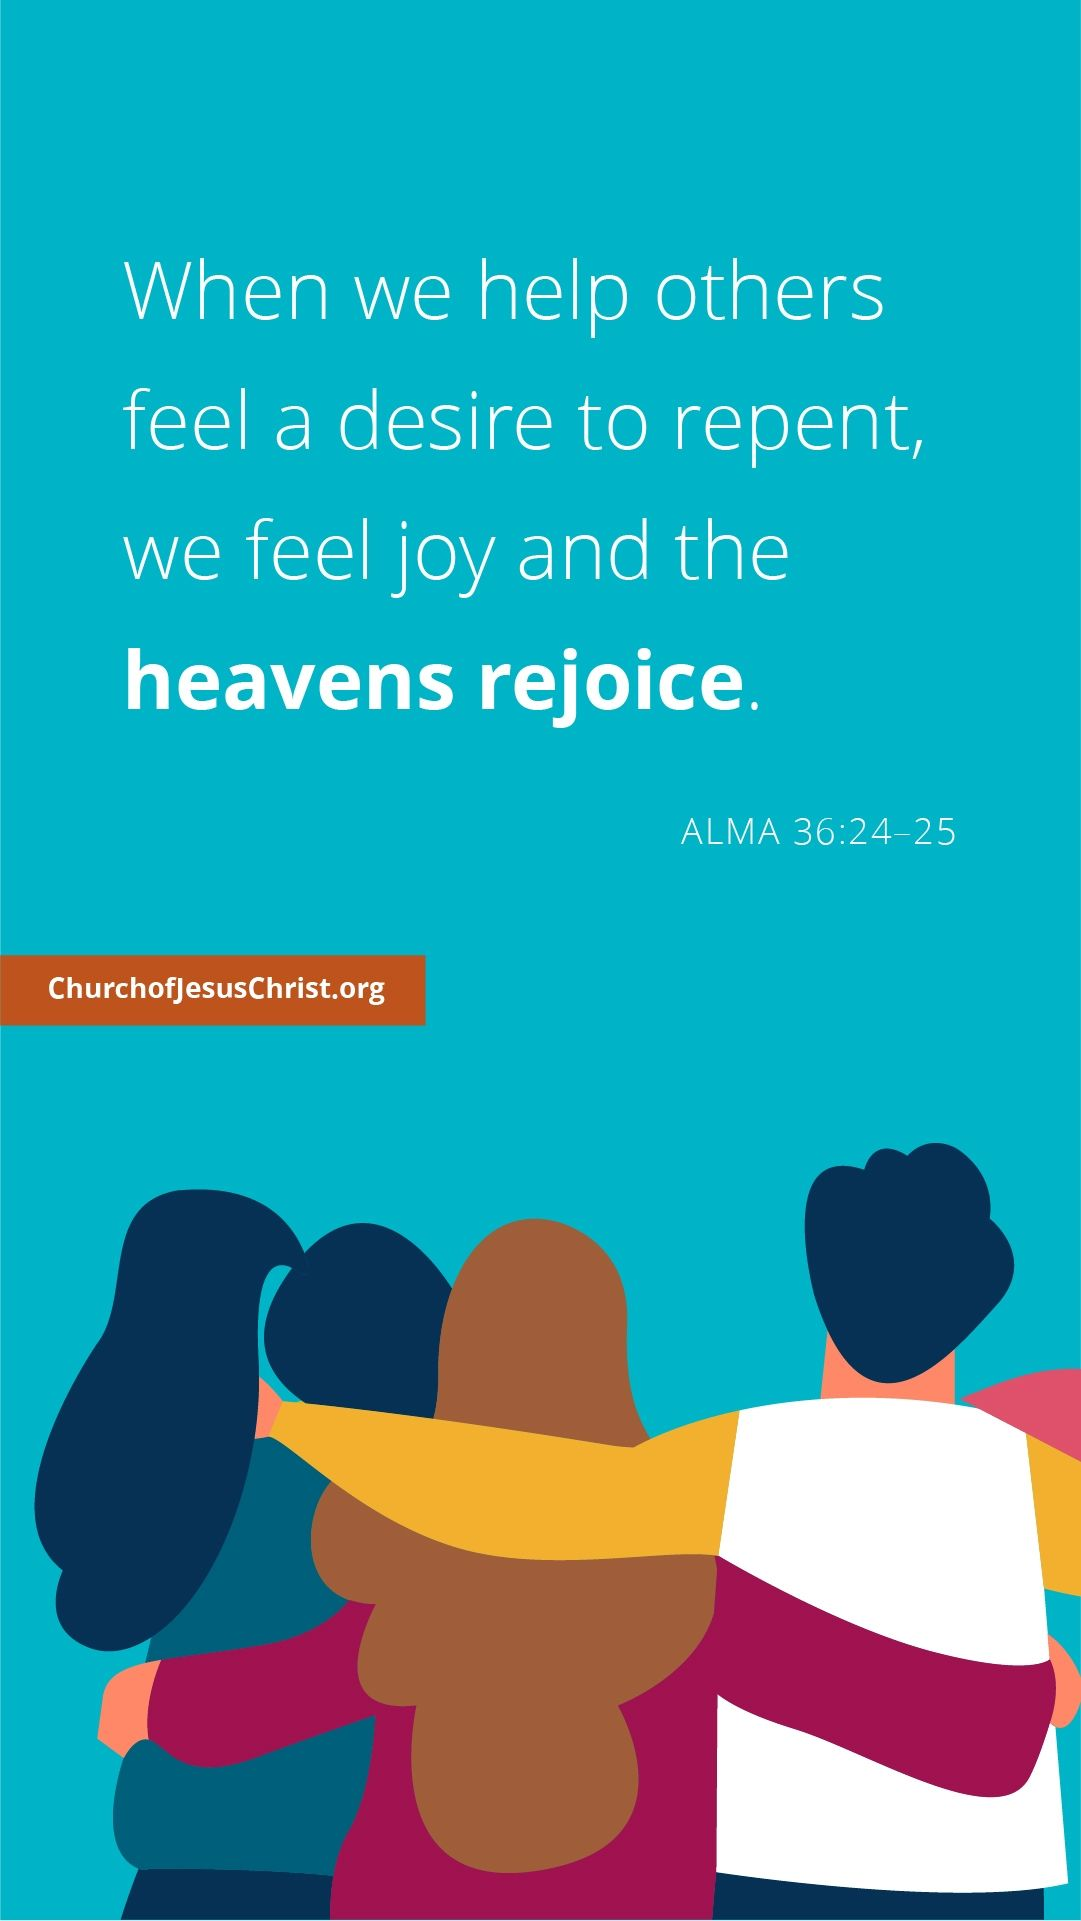 When we help others feel a desire to repent, we feel joy and the heavens rejoice. — See Alma 36: 24–25